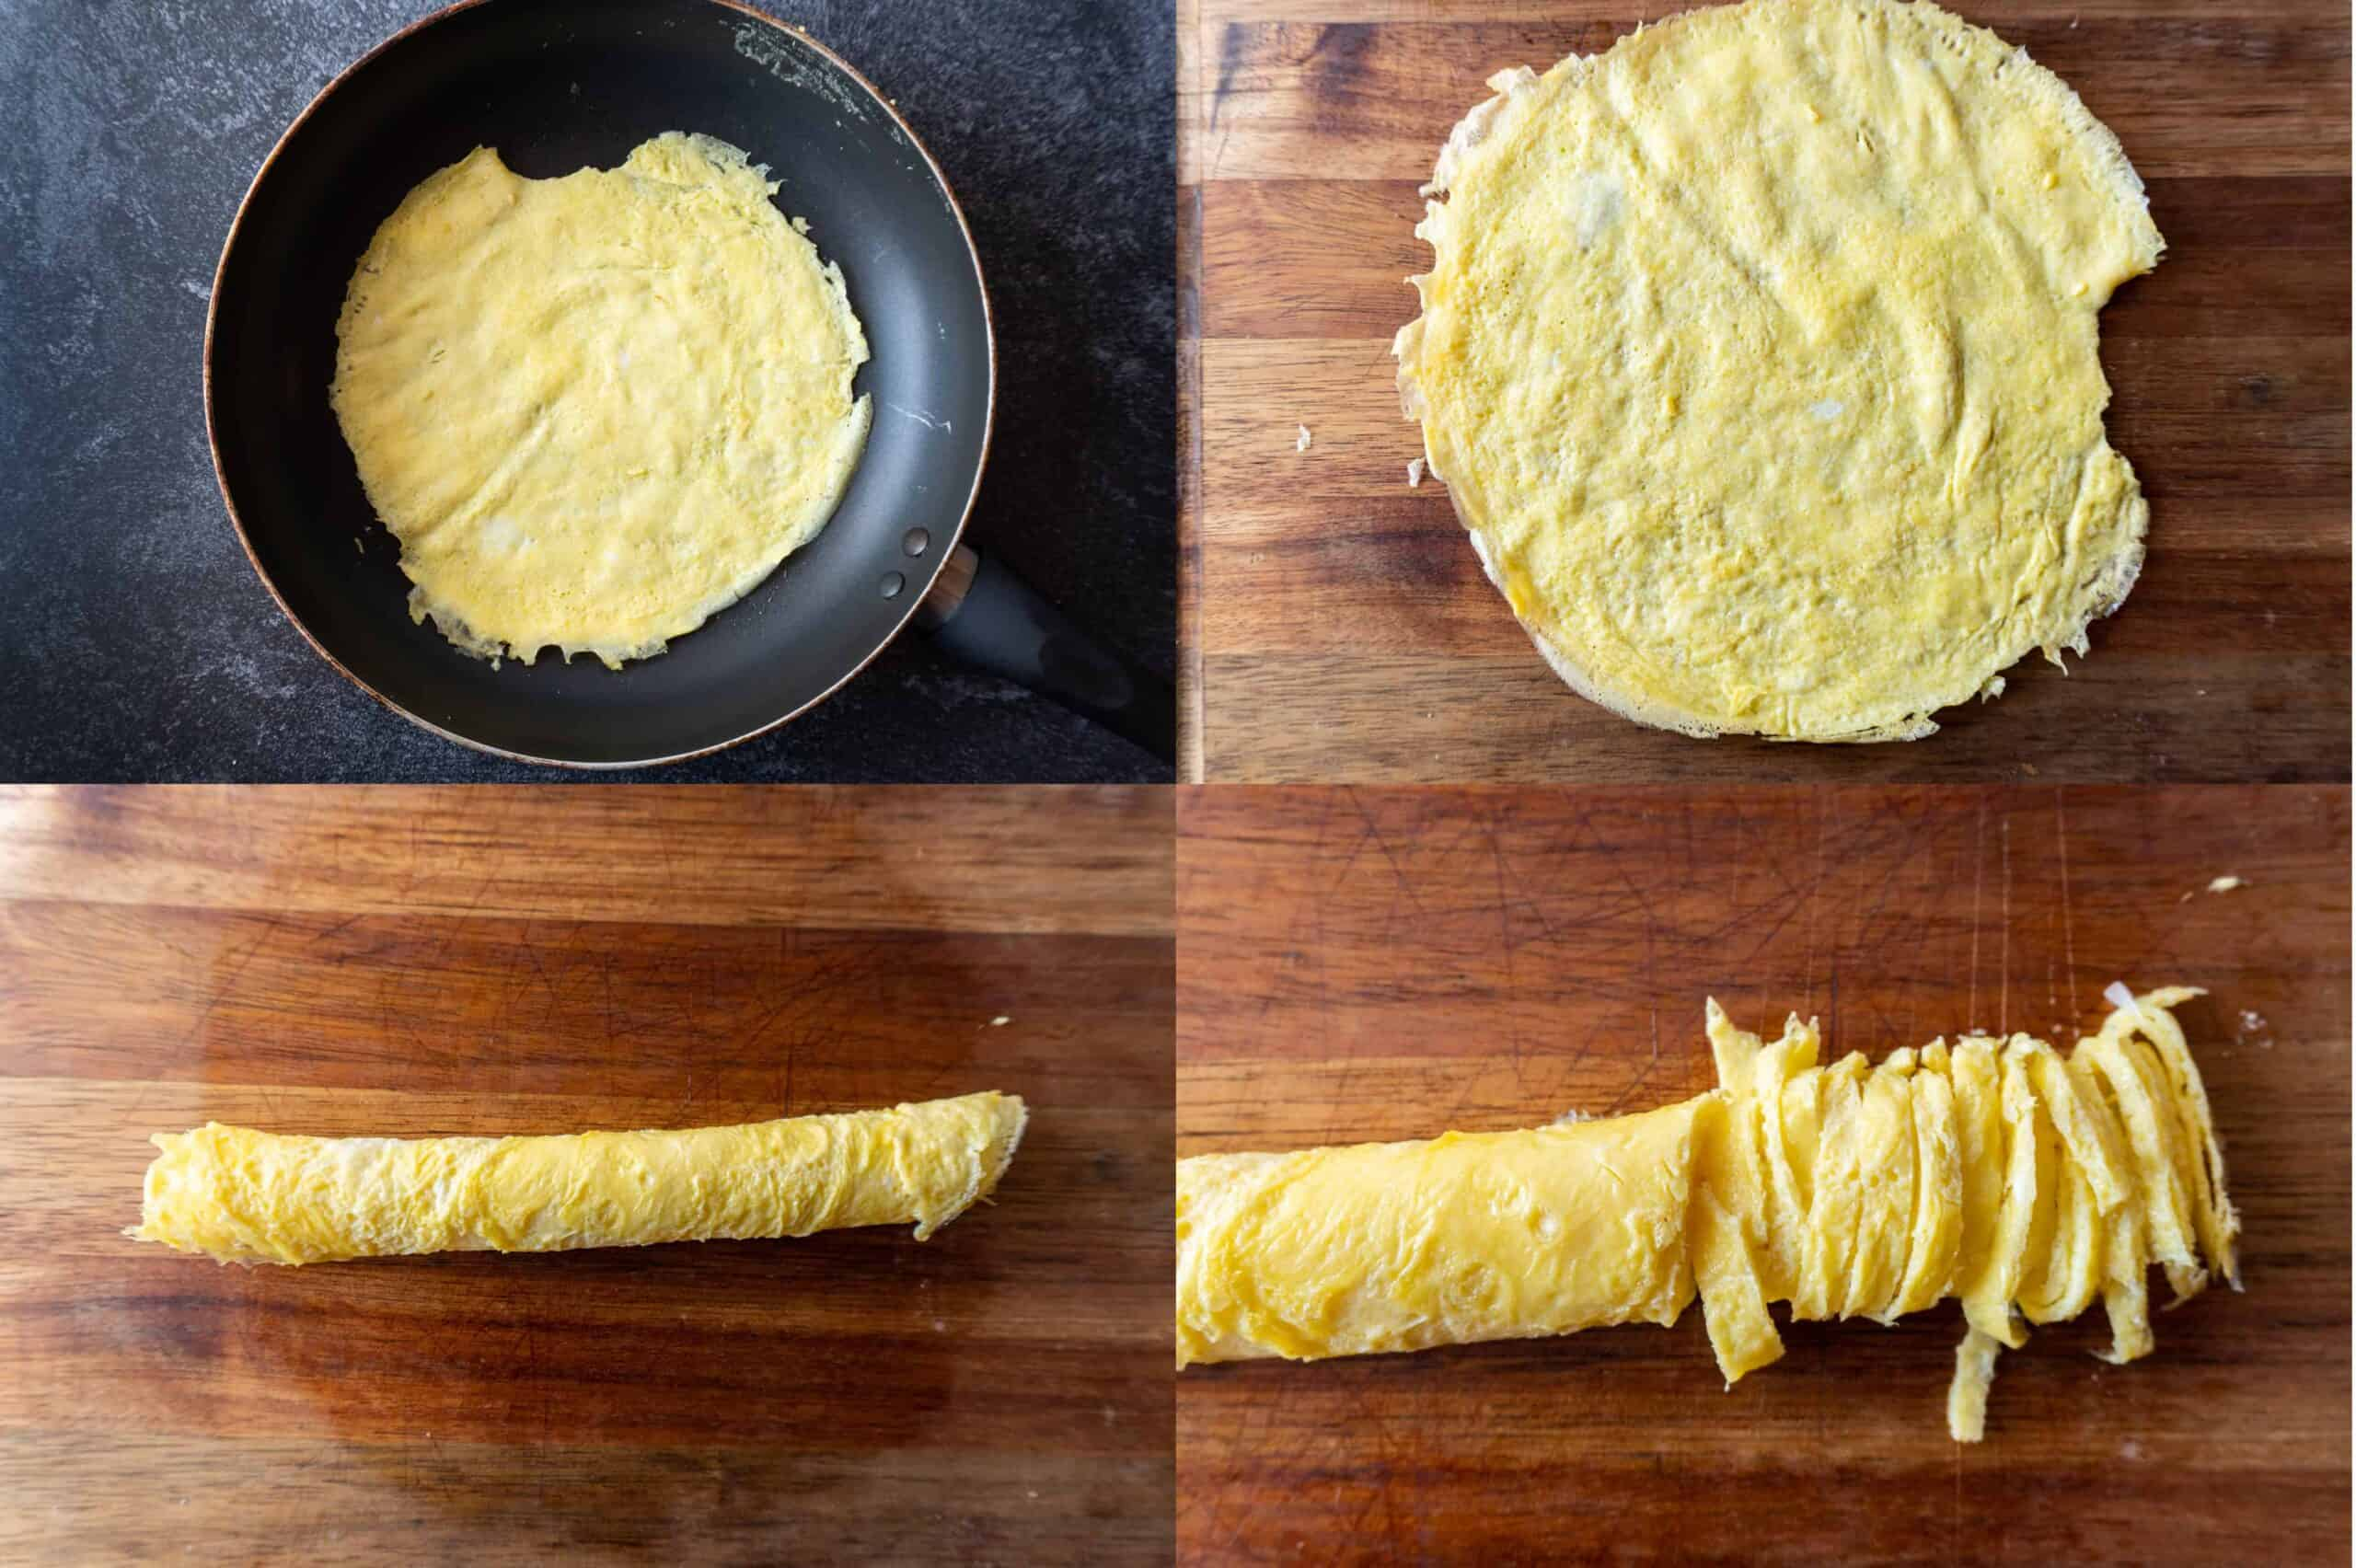 egg ribbon making steps - cook in pan, roll, then slice